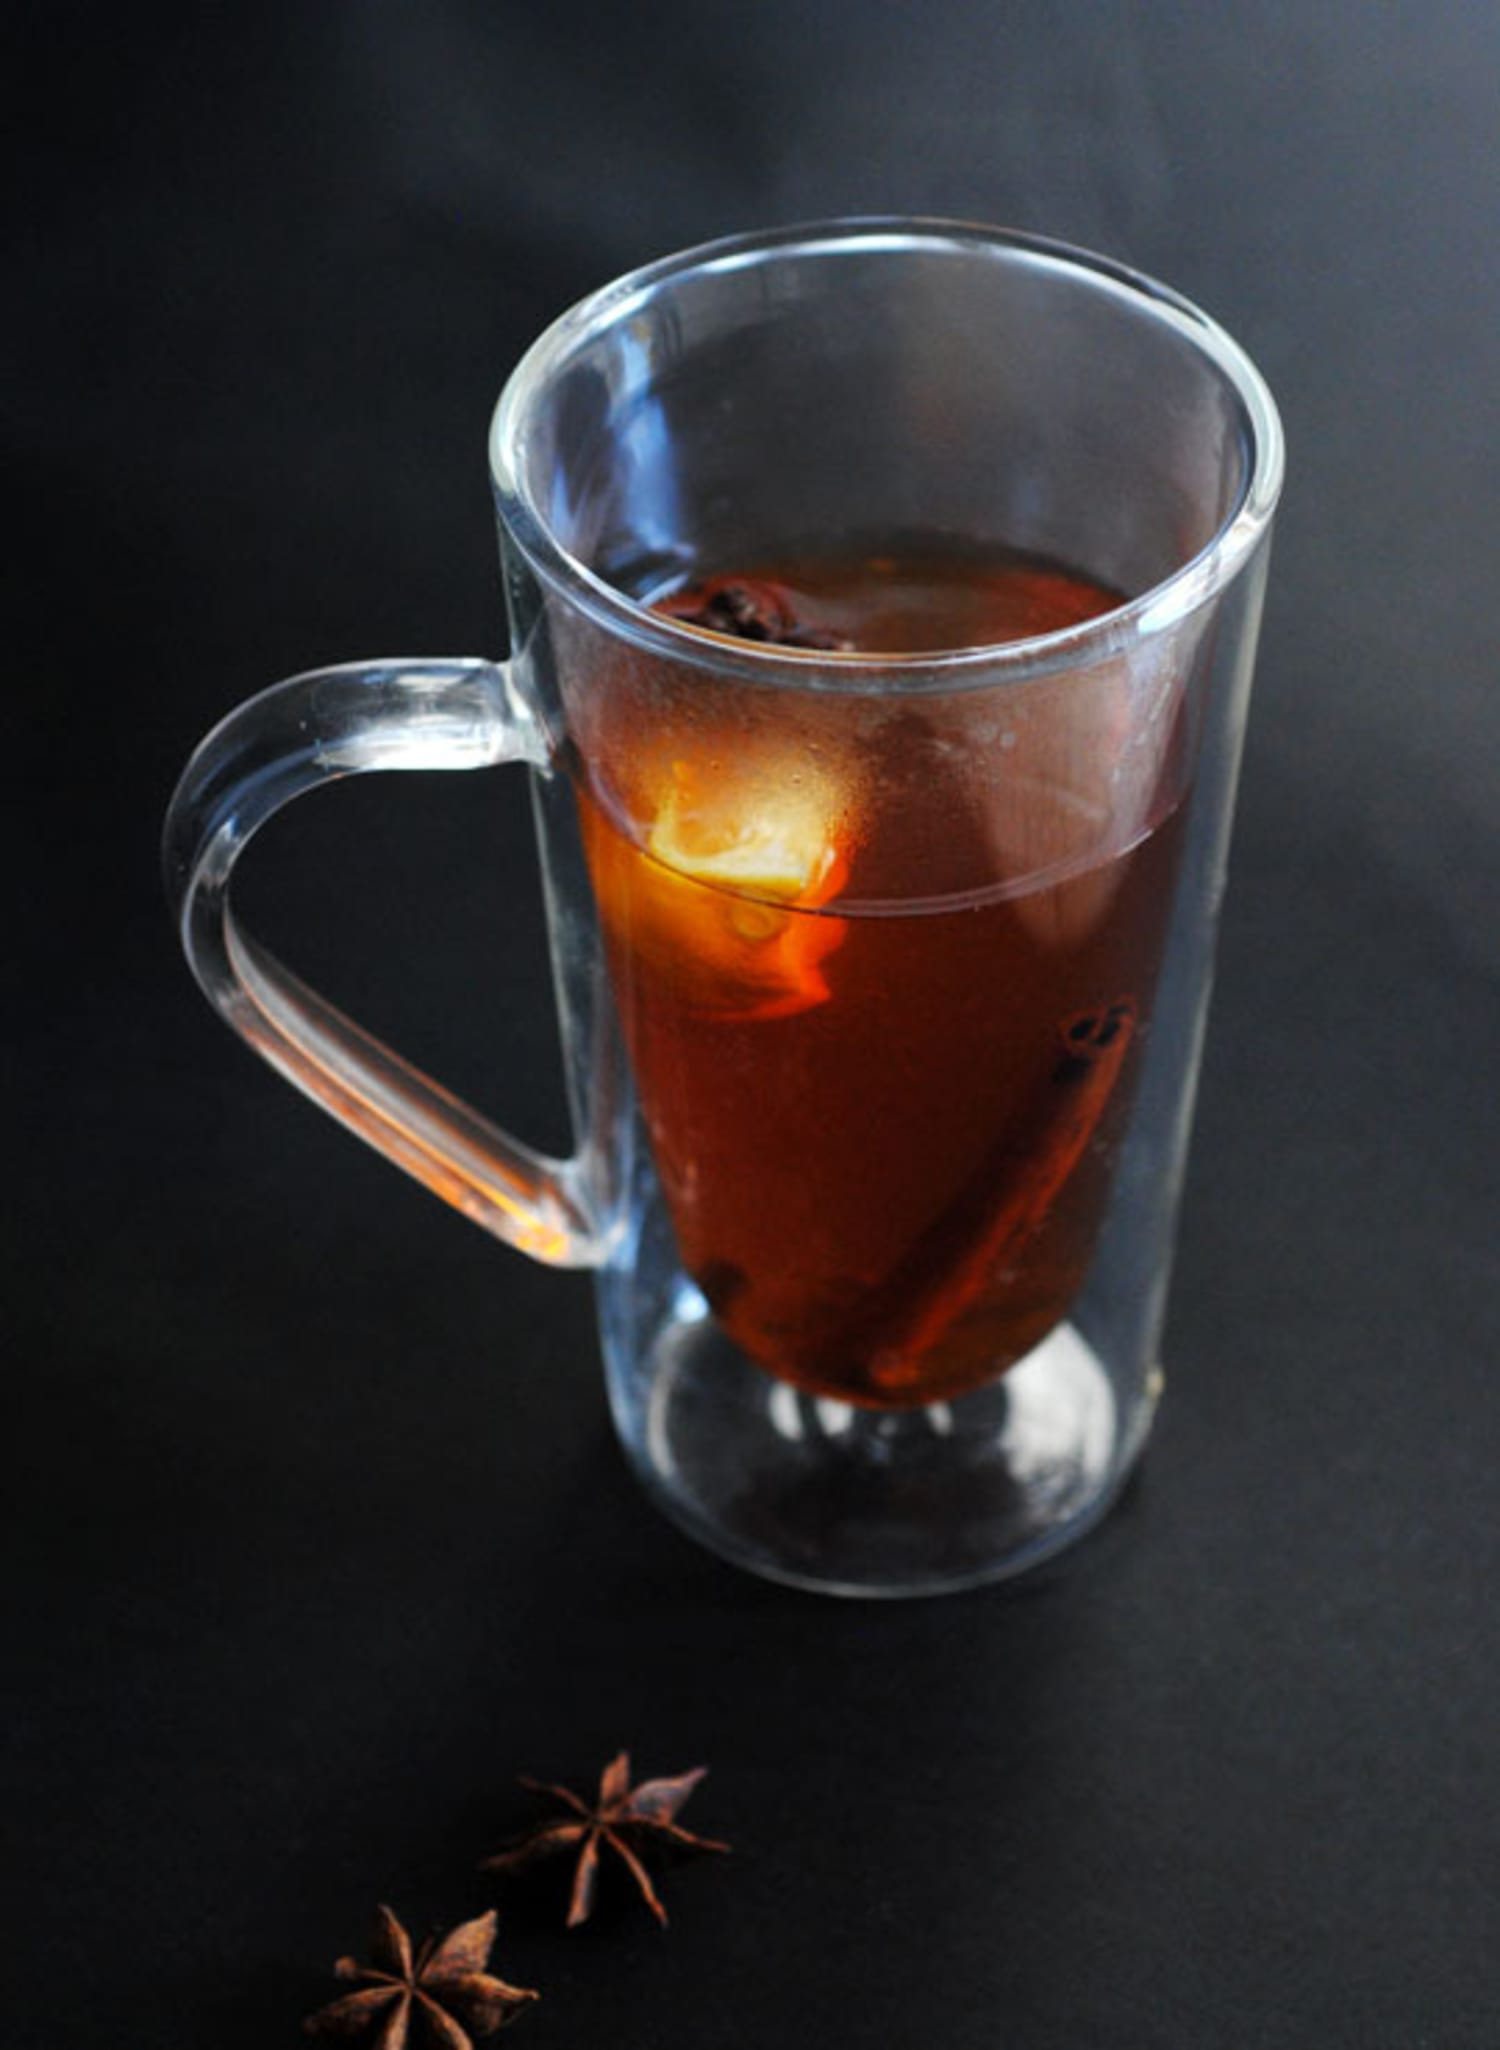 The Whiskey Tea Toddy